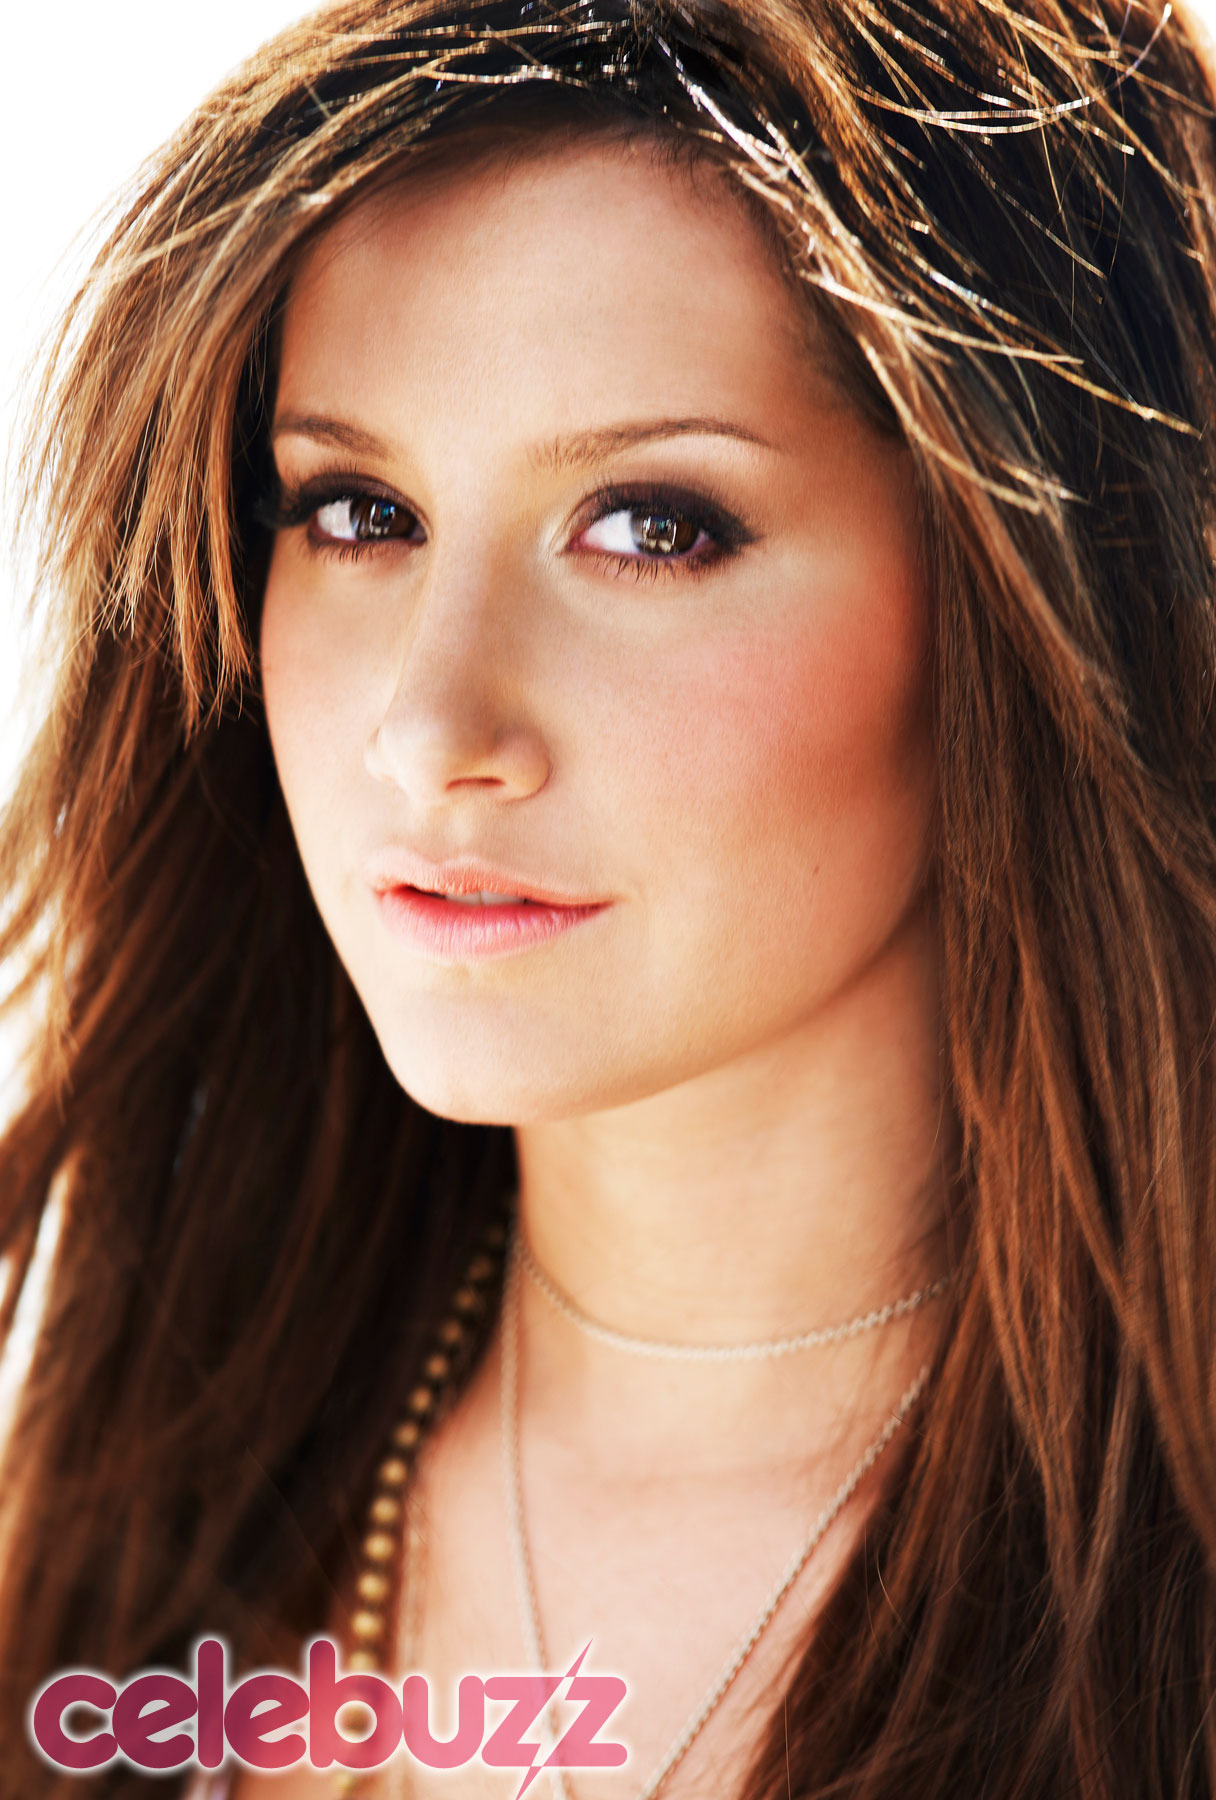 EXCLUSIVE PIC: Ashley Tisdale Is Our 'Guilty Pleasure'